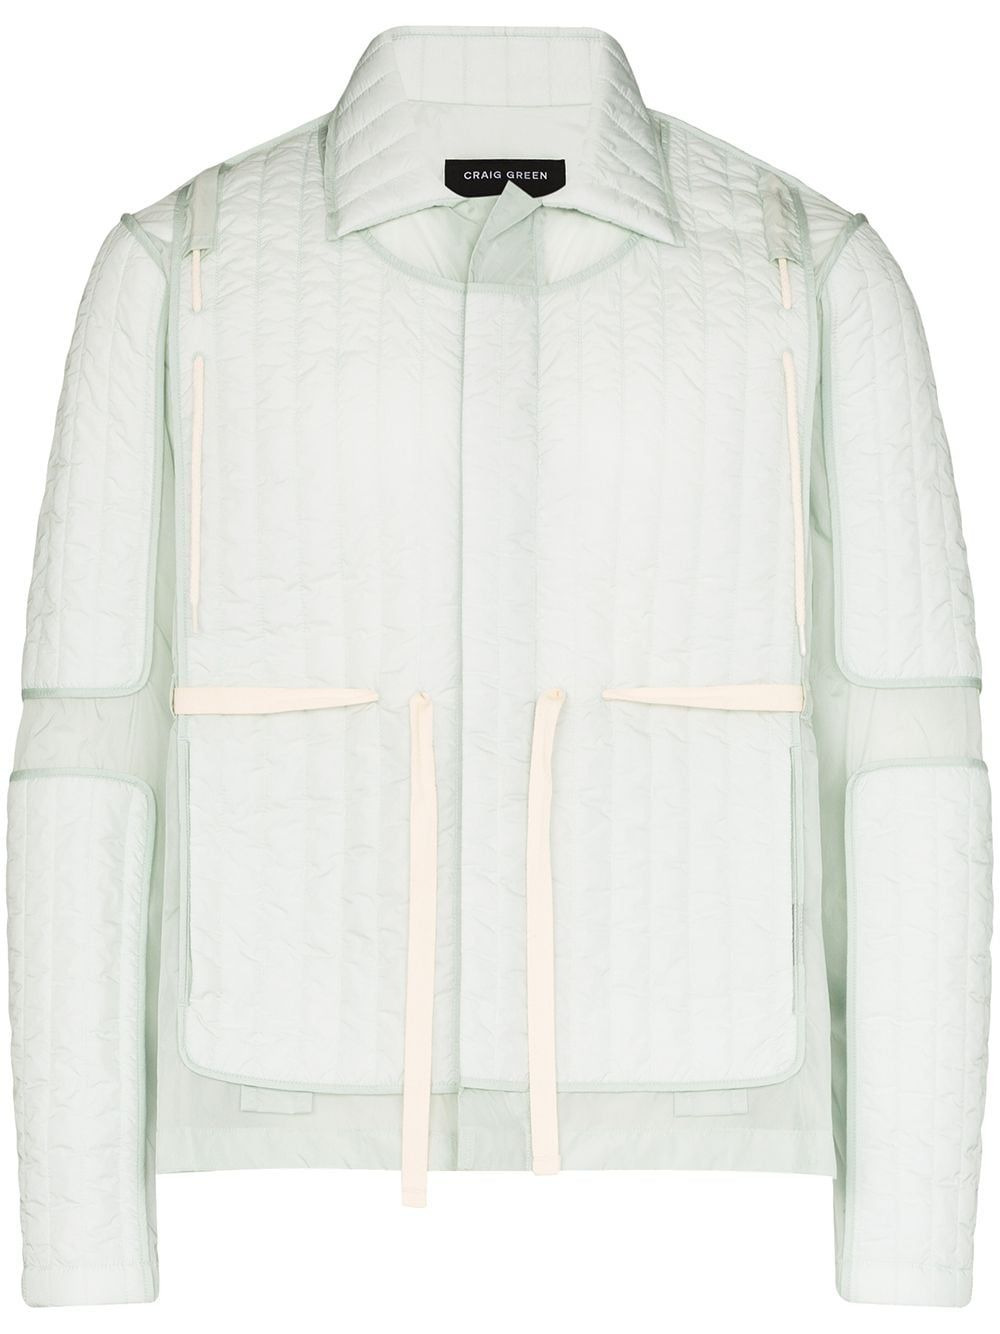 Craig Green Quilted Panelled Jacket Farfetch In 2020 Panel Jacket Craig Green Green Quilt